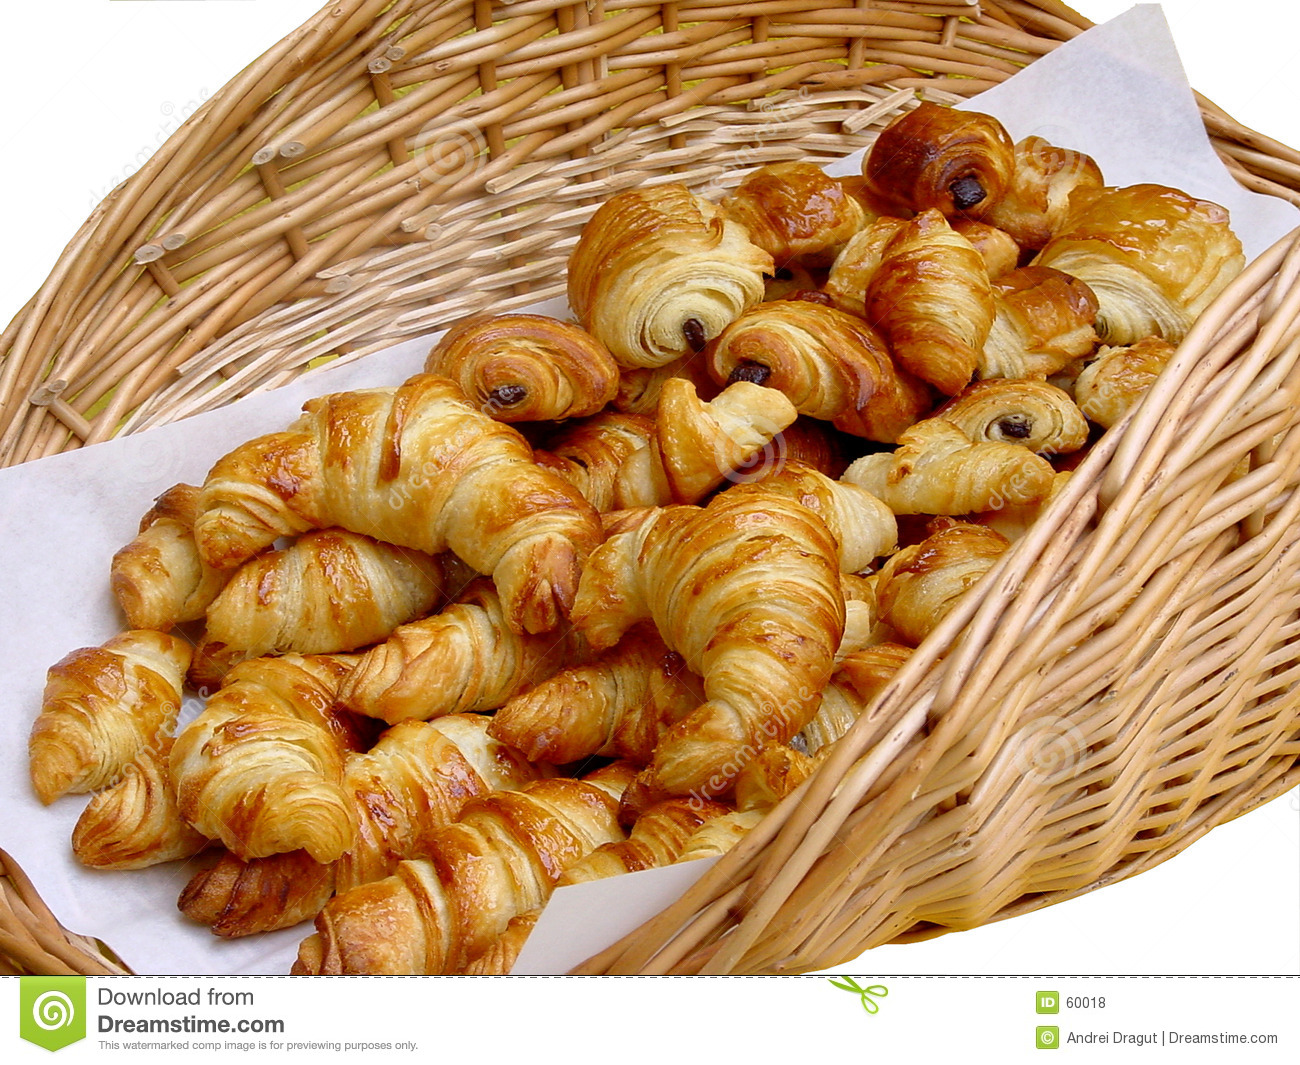 https://thumbs.dreamstime.com/z/croissants-60018.jpg